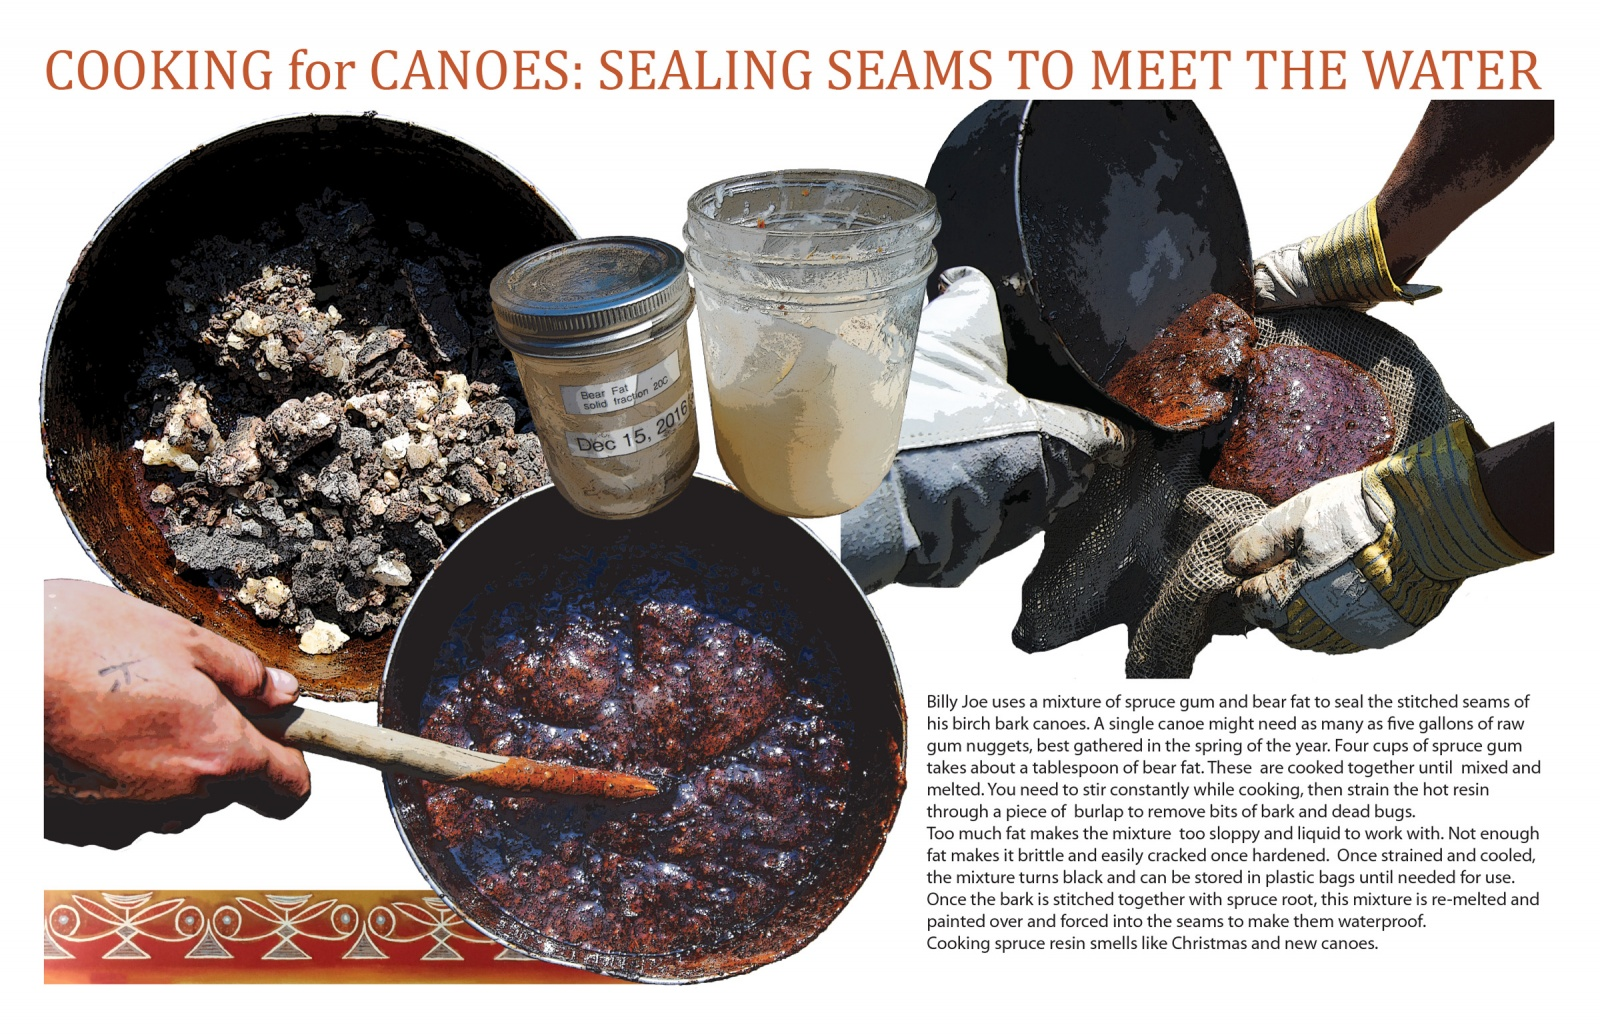 Cooking for Canoes: Sealing Seams to Meet the Water